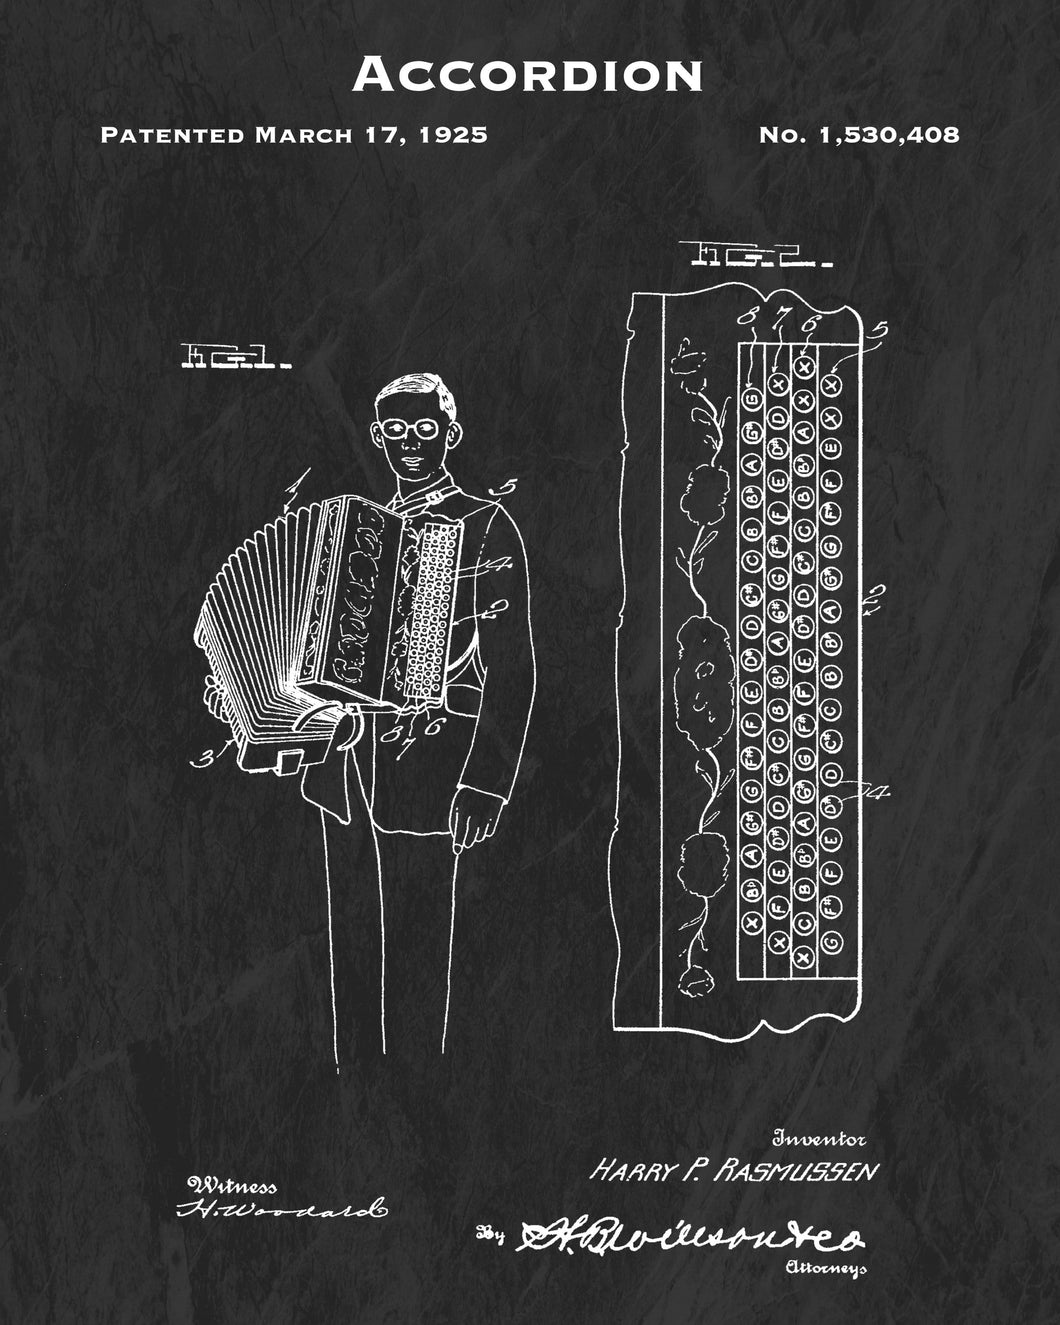 1925 Accordion Patent Art Print